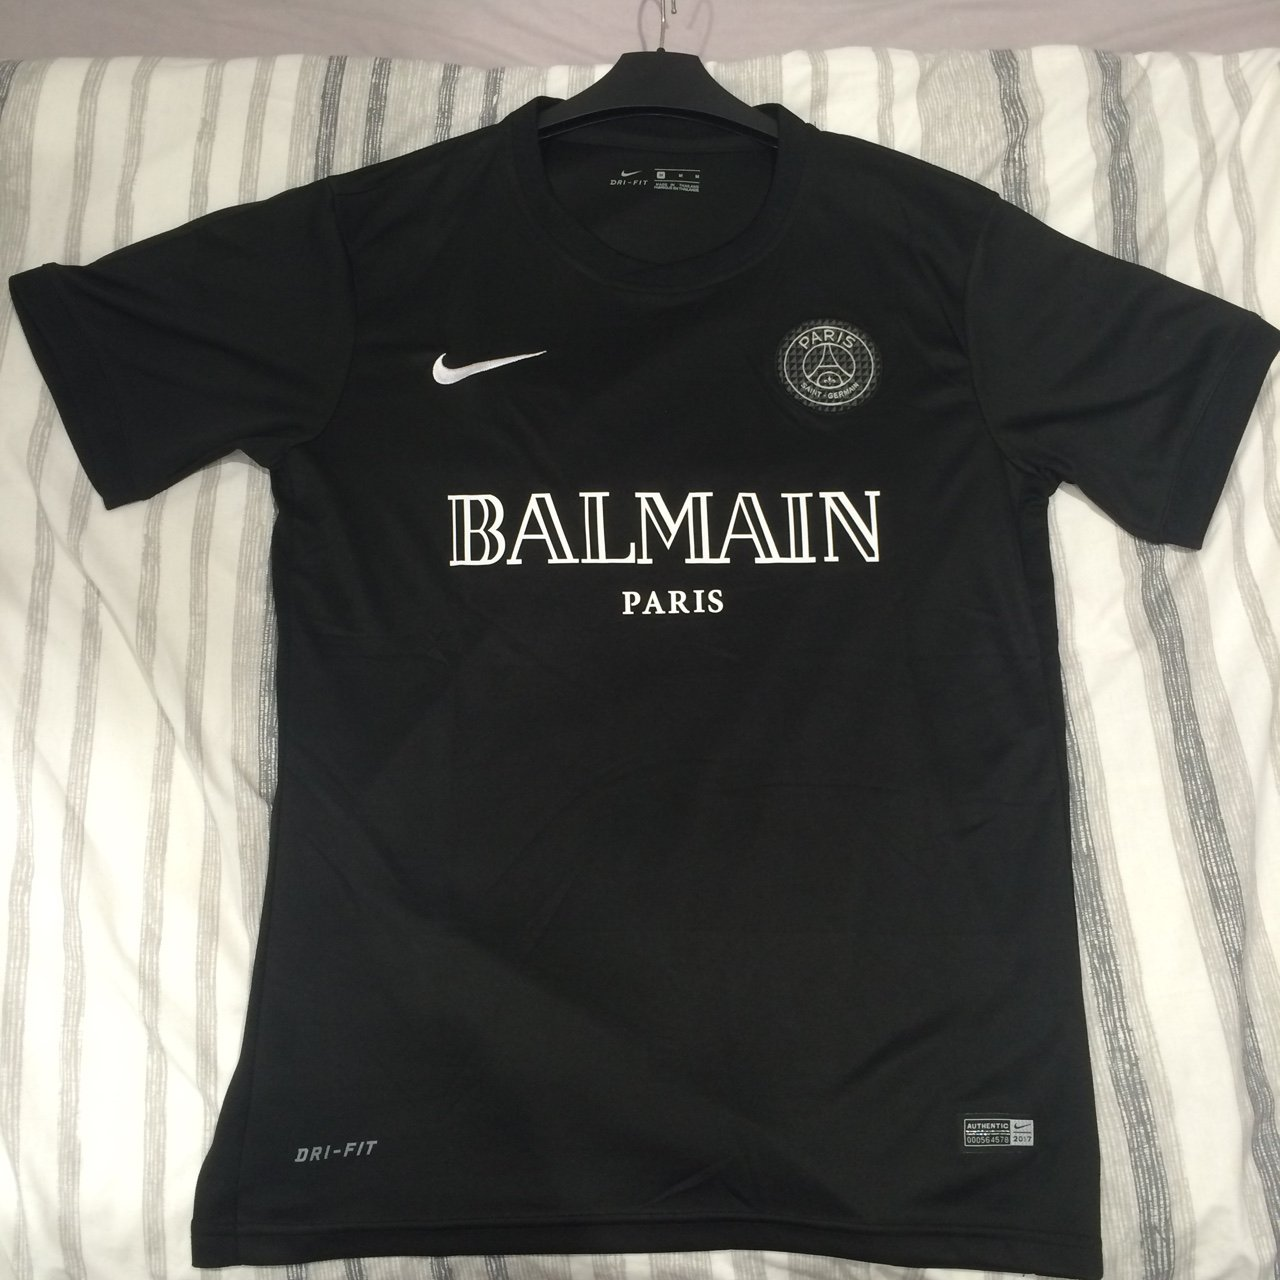 sports shoes 02496 679a8 Balmain Paris Saint Germain T-Shirt – Galleria Immagini ...